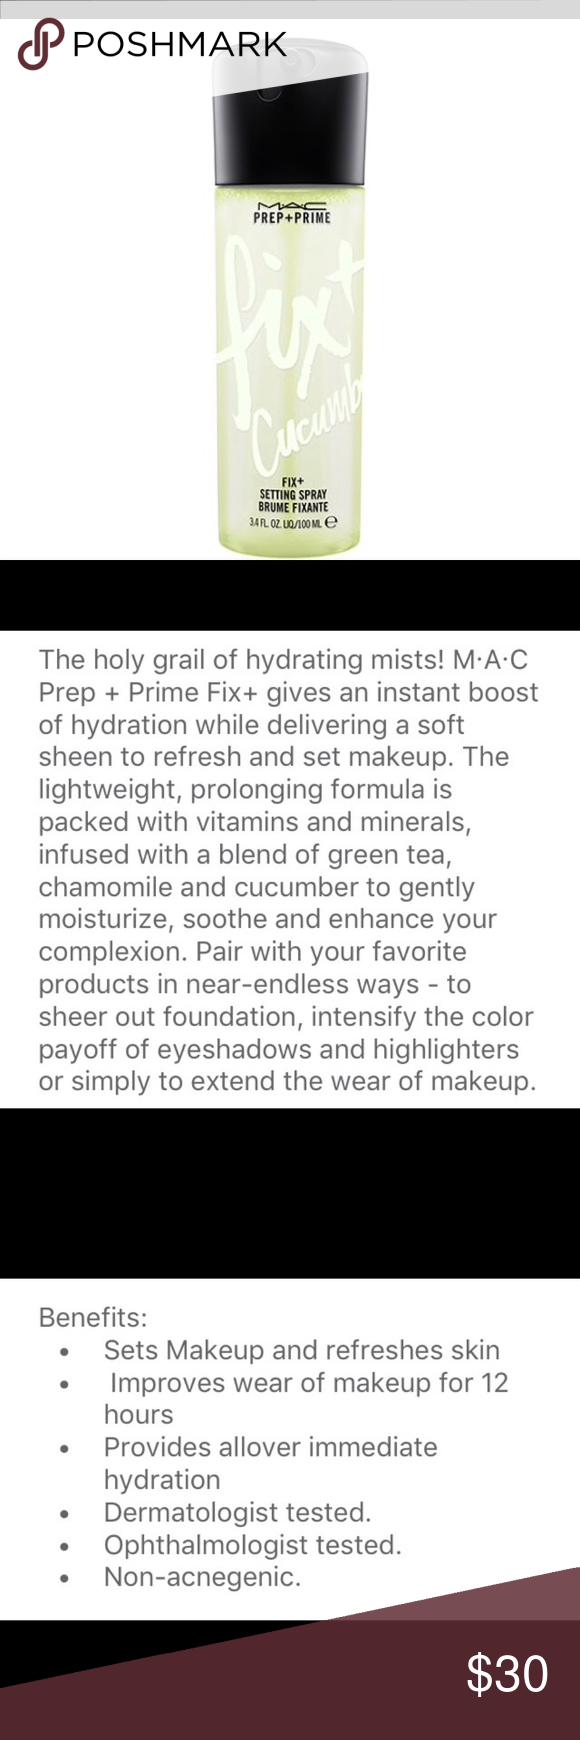 Dupe/homemade Mac Fix plus or makeup setting spray. Cost